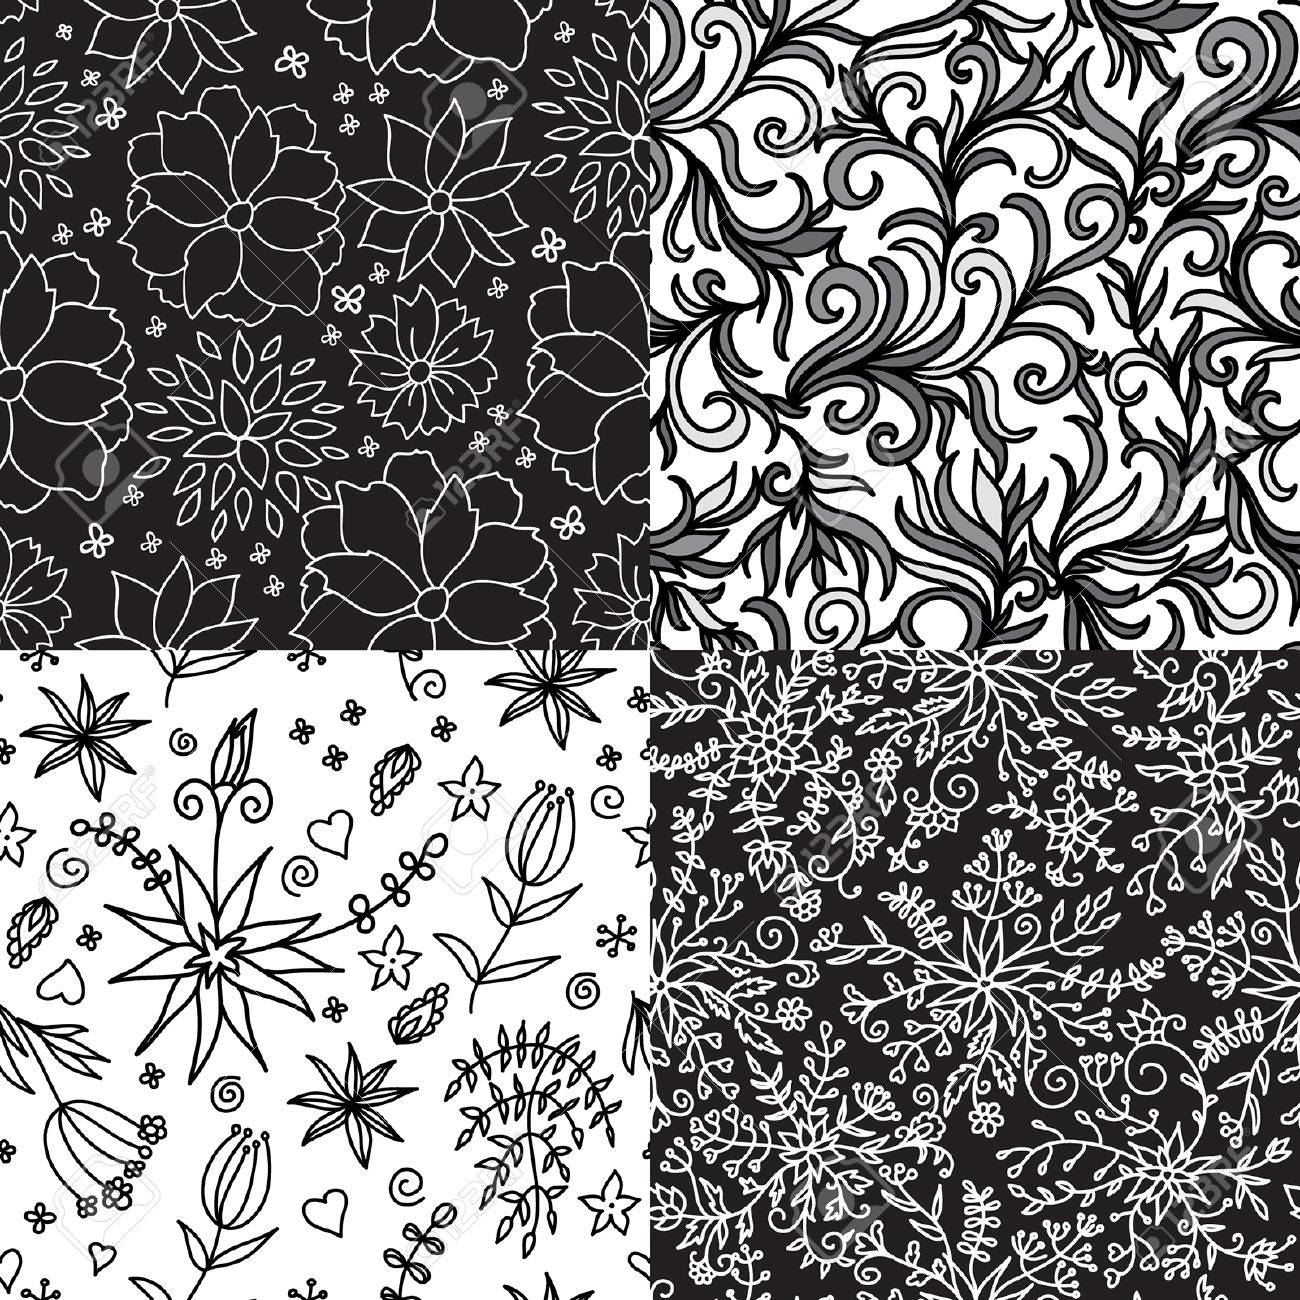 Hand Drawn Vector Flowers Patterns Set Seamless Floral Backgrounds